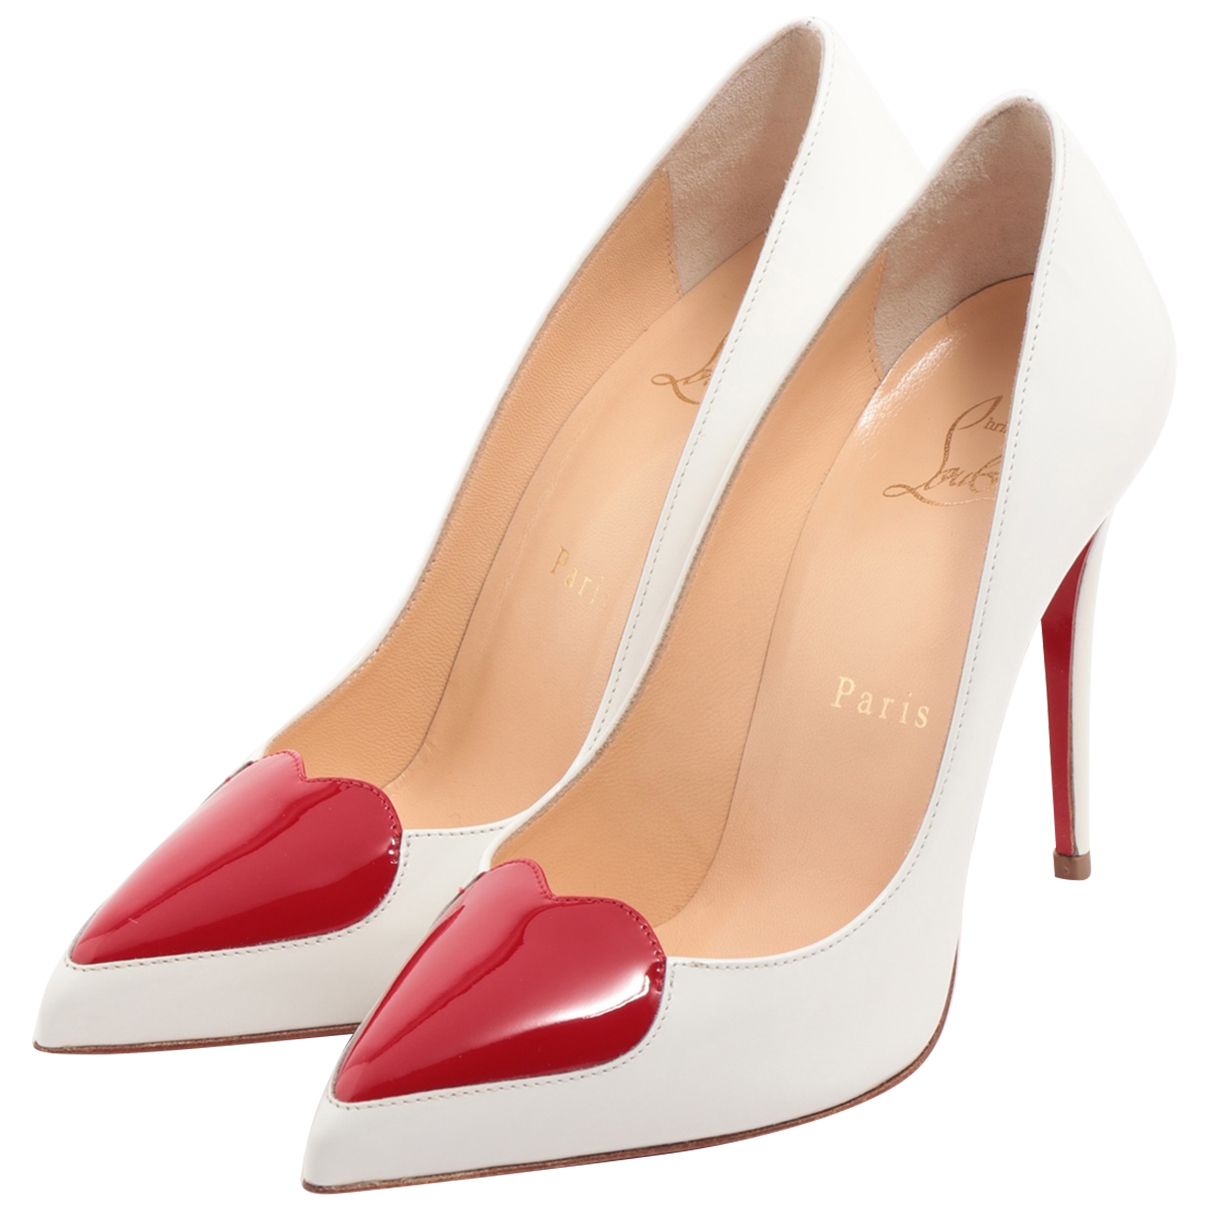 Christian Louboutin \N Pumps in  Weiss Lackleder